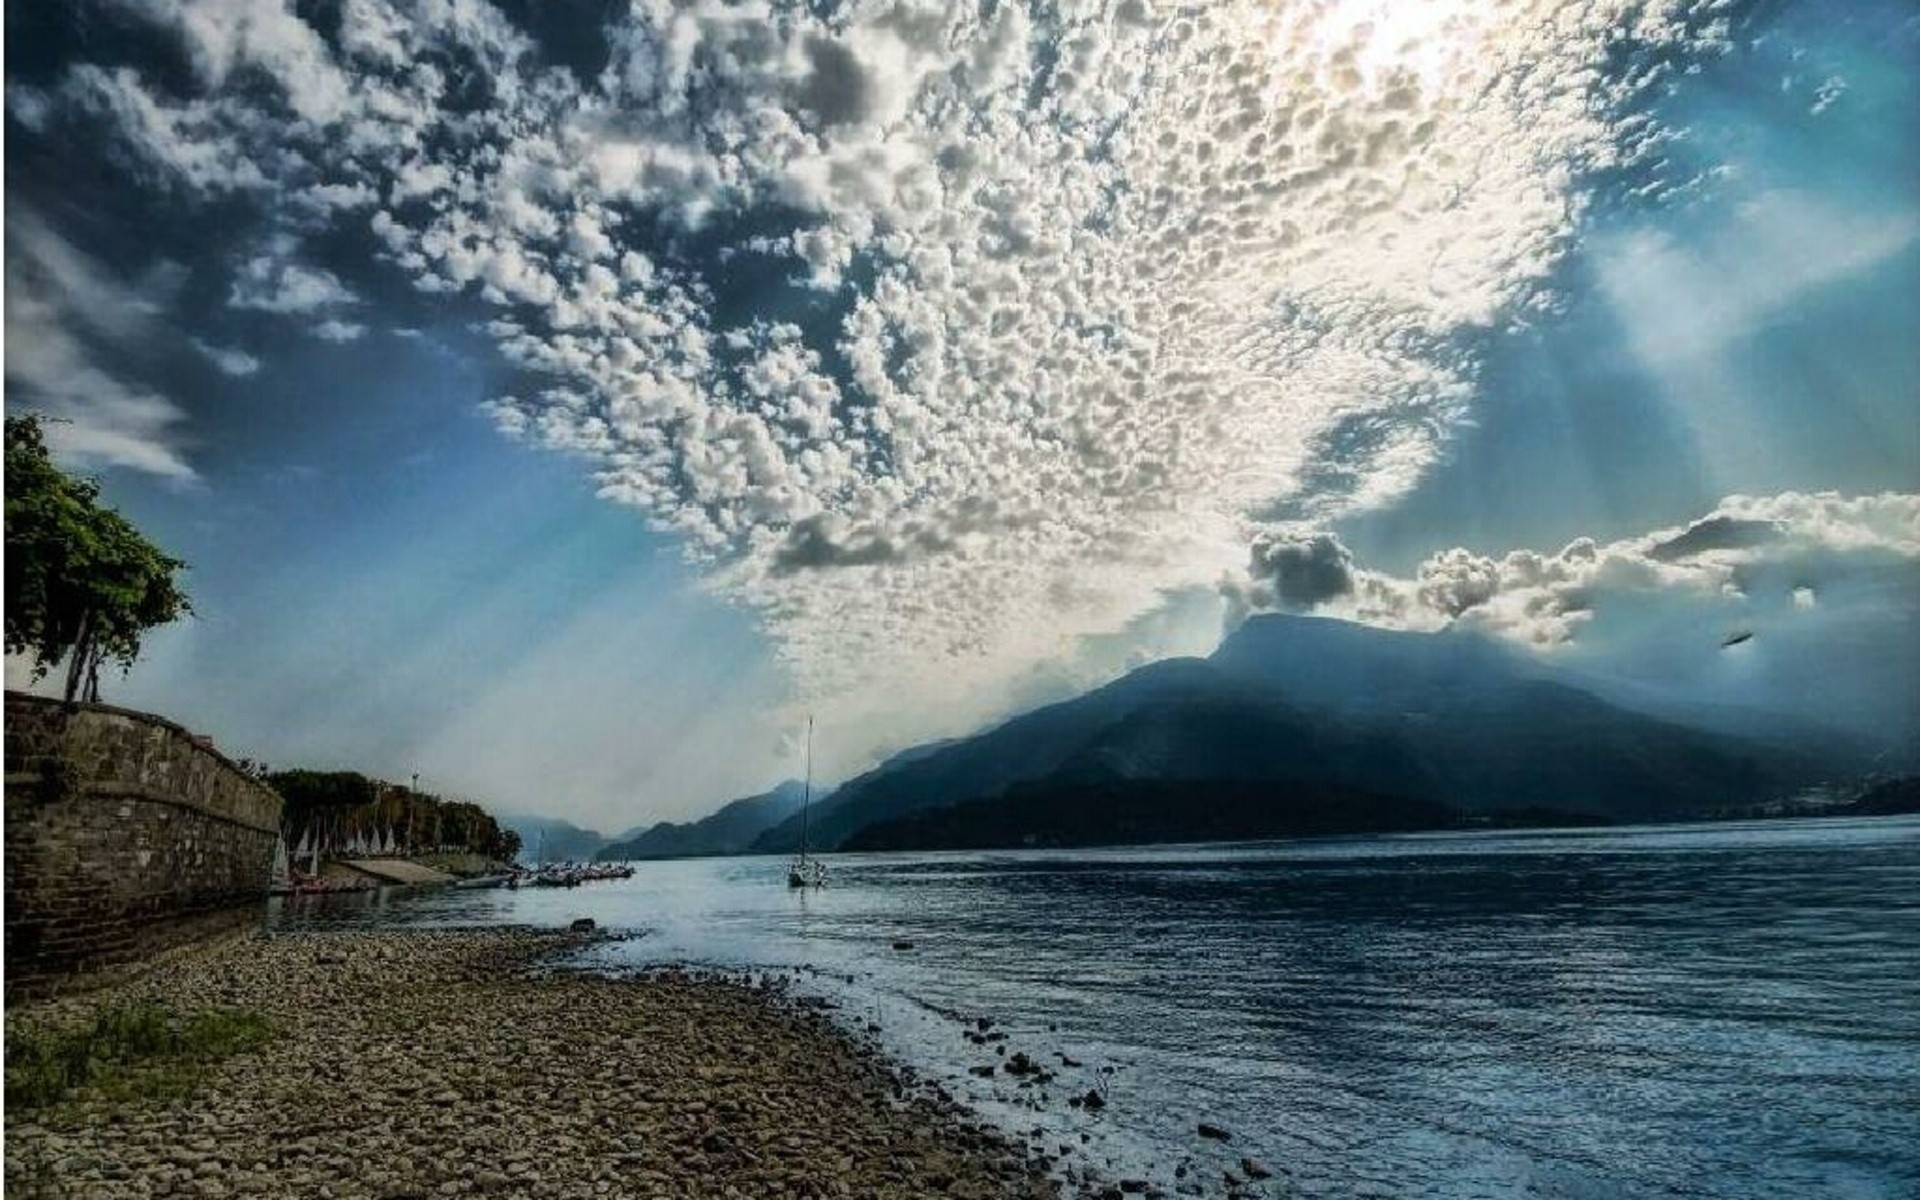 italy water travel landscape sky seashore ocean nature sea beach outdoors mountain scenic tourism